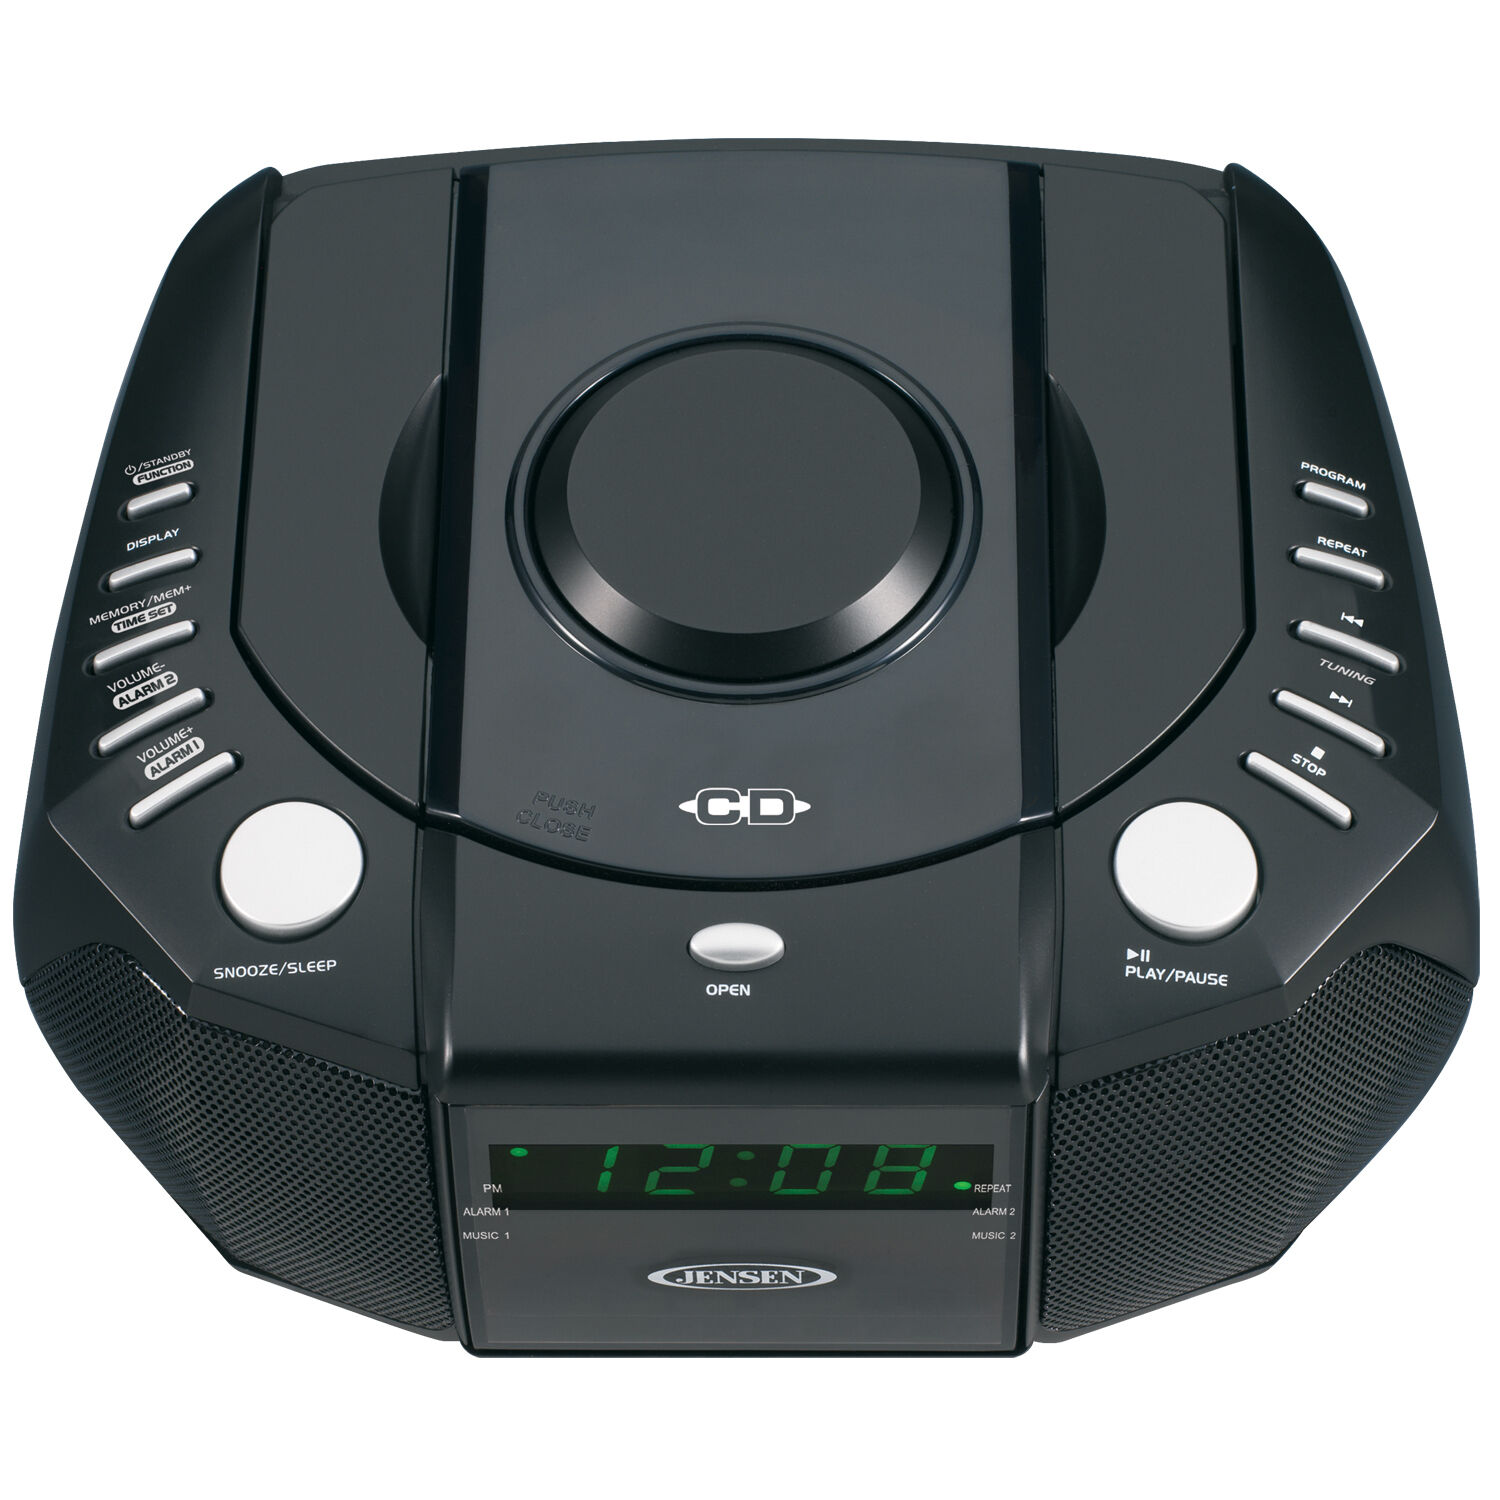 jensen portable dual alarm clock am fm stereo radio top loading cd player new ebay. Black Bedroom Furniture Sets. Home Design Ideas